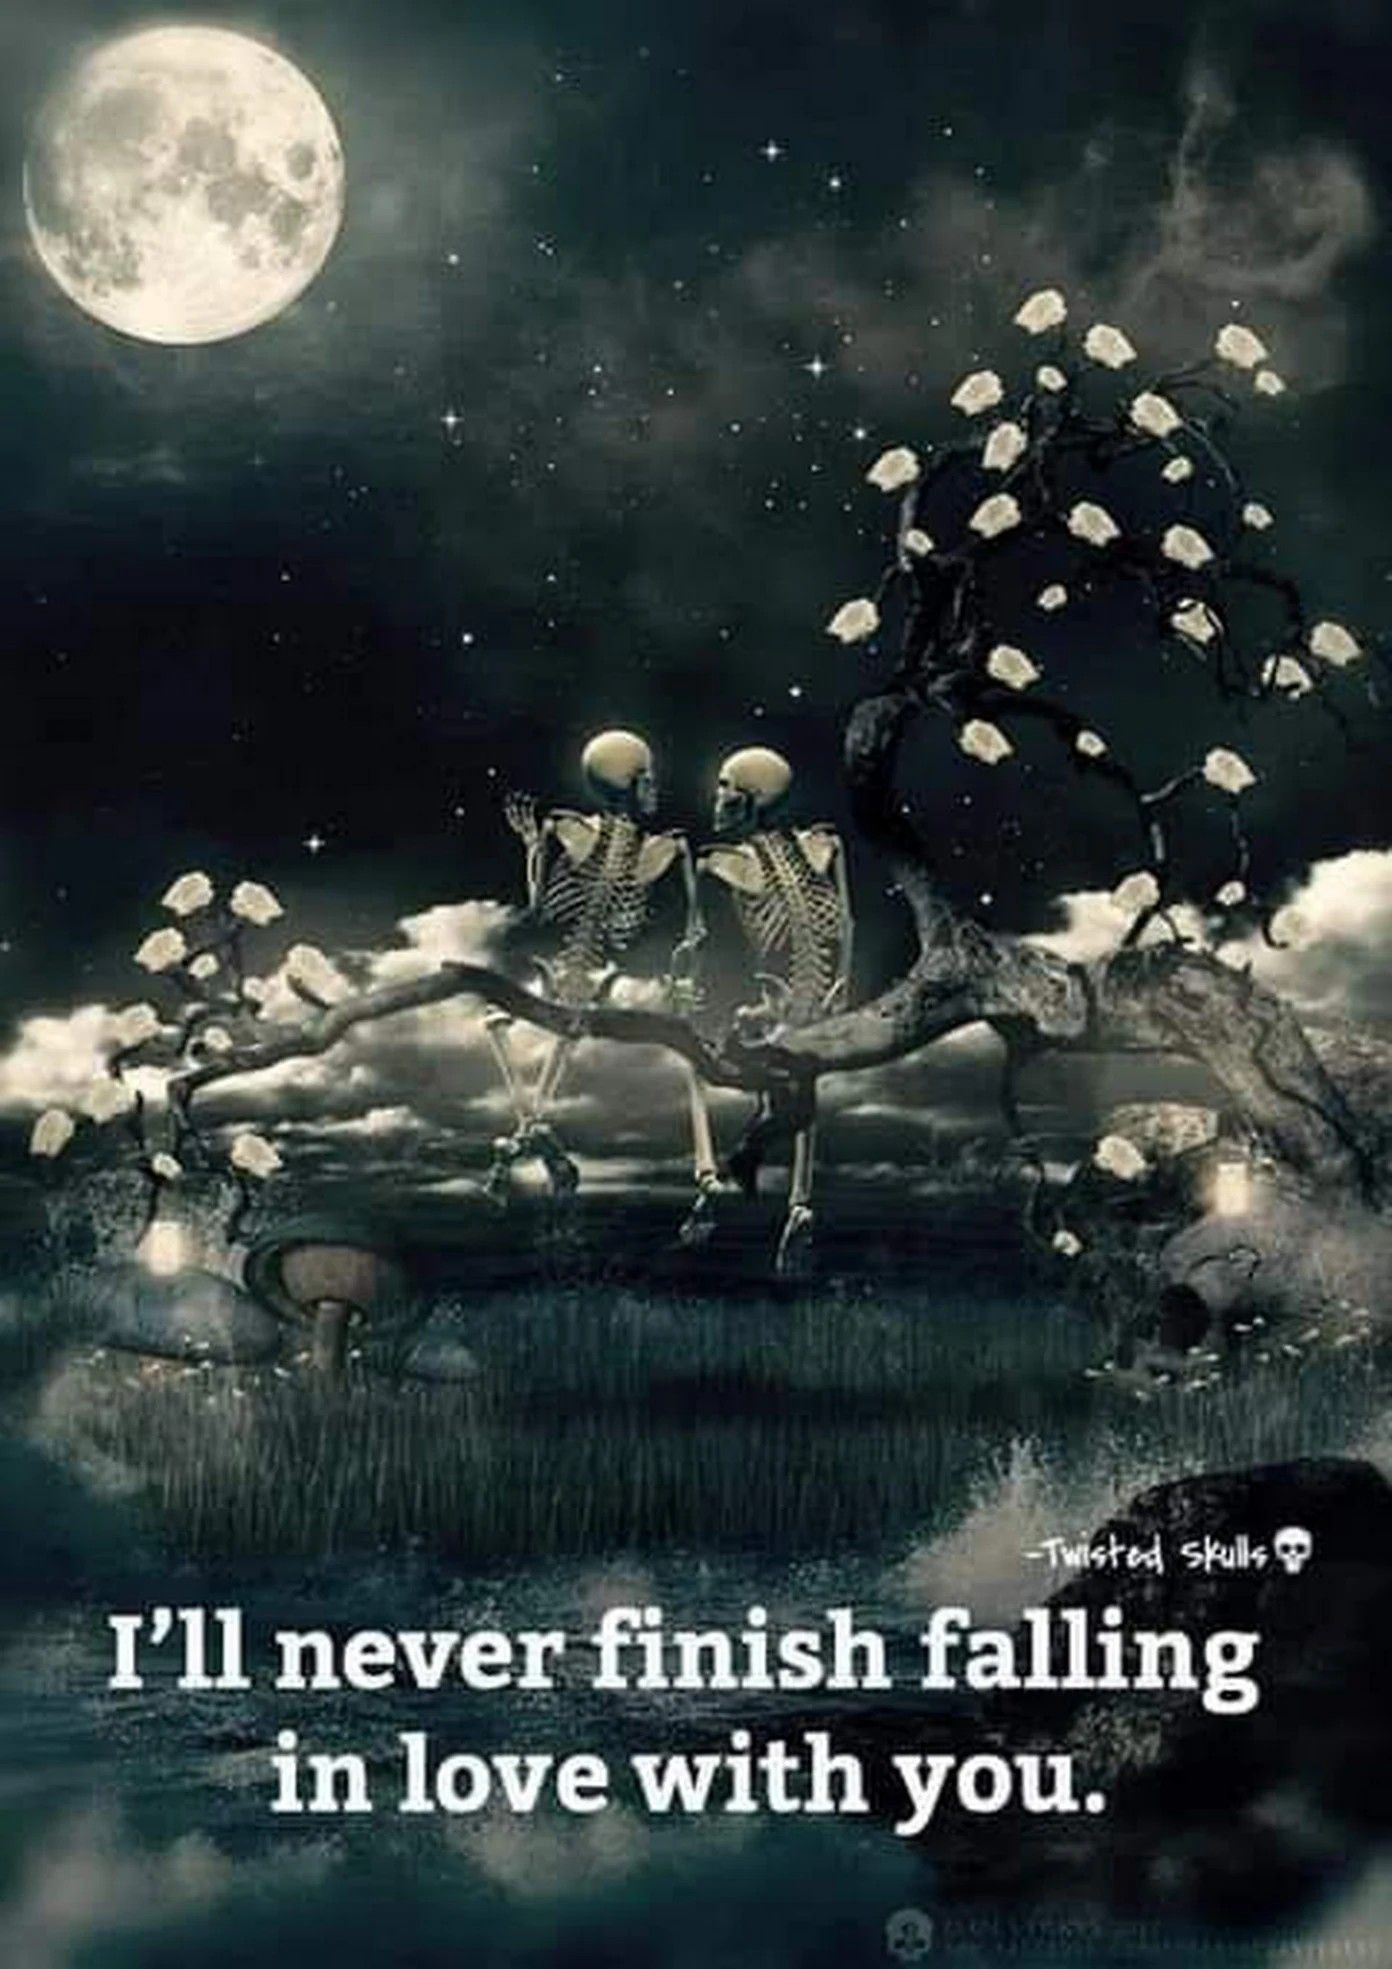 How Could I If I Keep On Falling Deeper And Deeper In Love With You Every Single Day Dark Love Quotes Gothic Wallpaper Dark Love